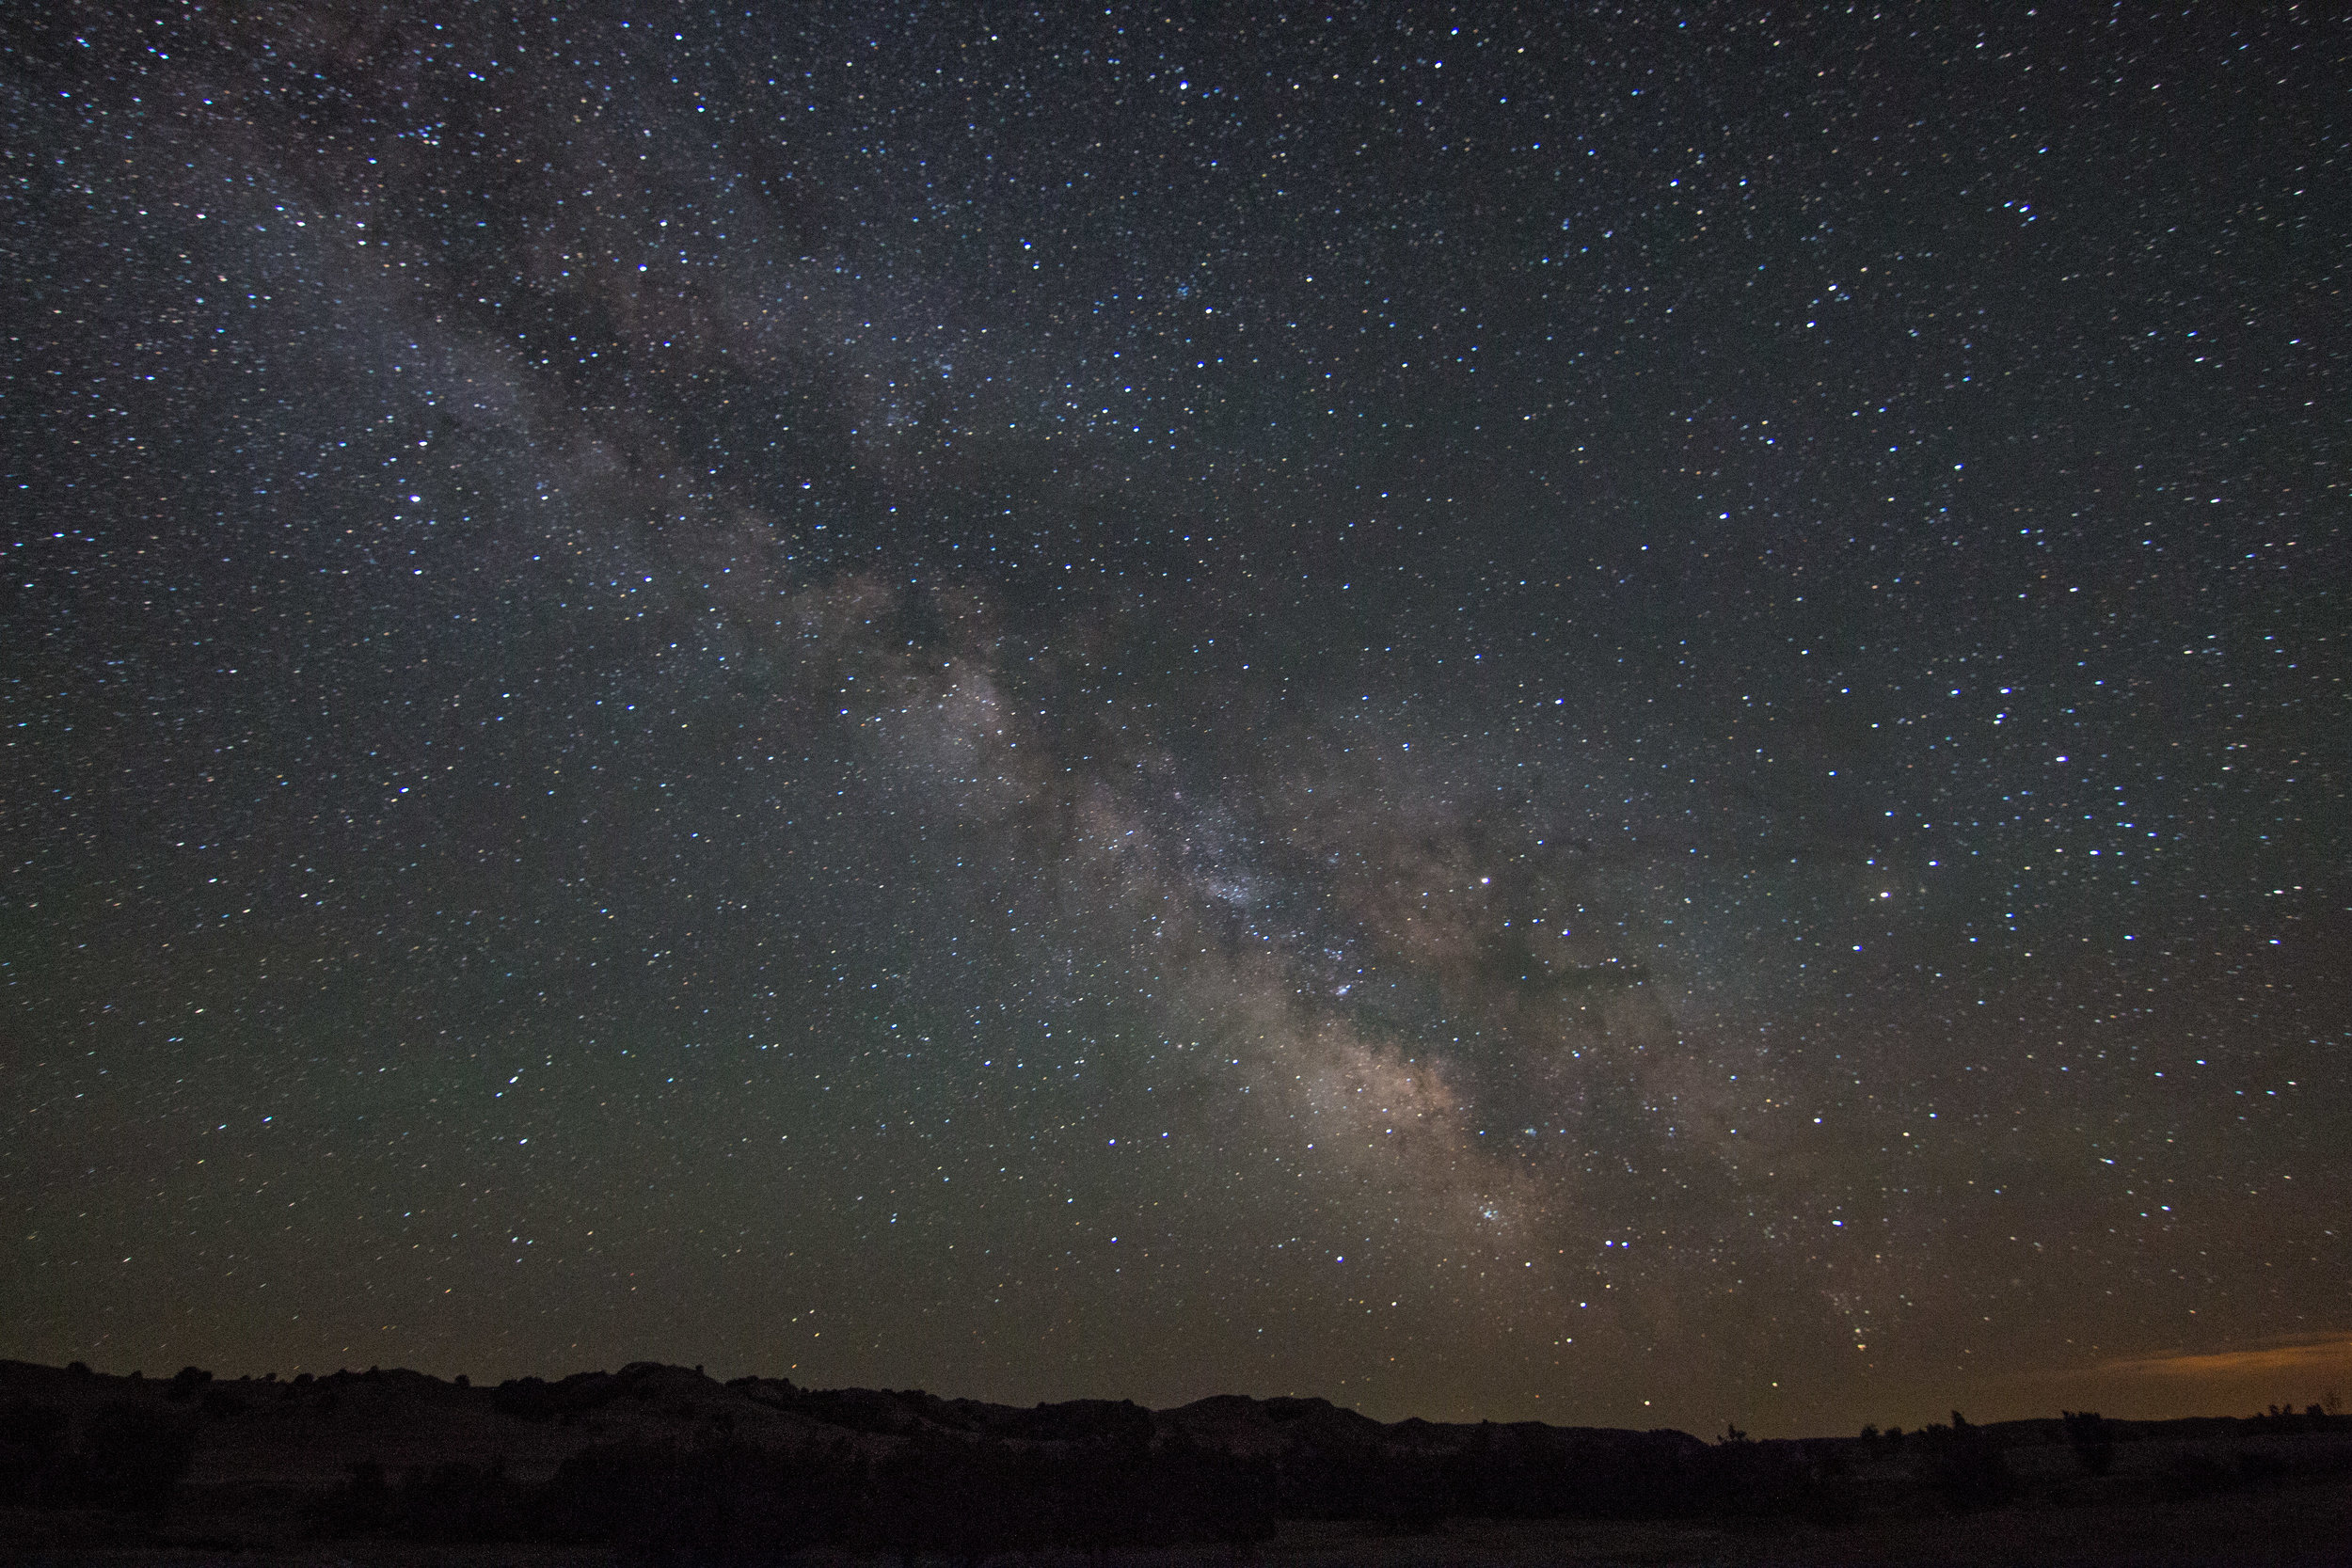 Stargazing in Badlands National Park